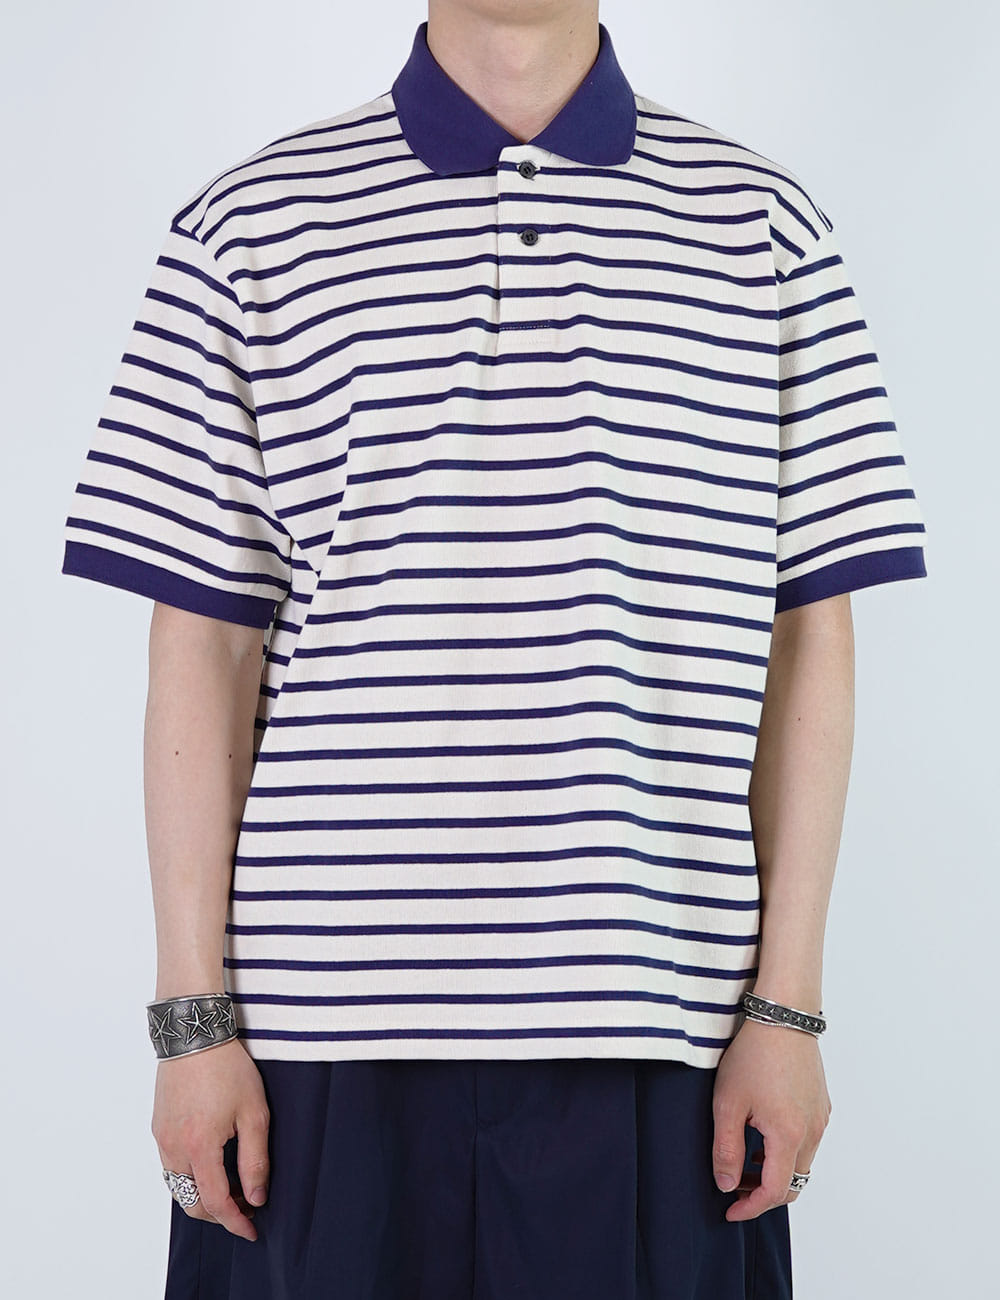 URU : COTTON BORDER POLO SHIRTS (WHITE/NAVY)